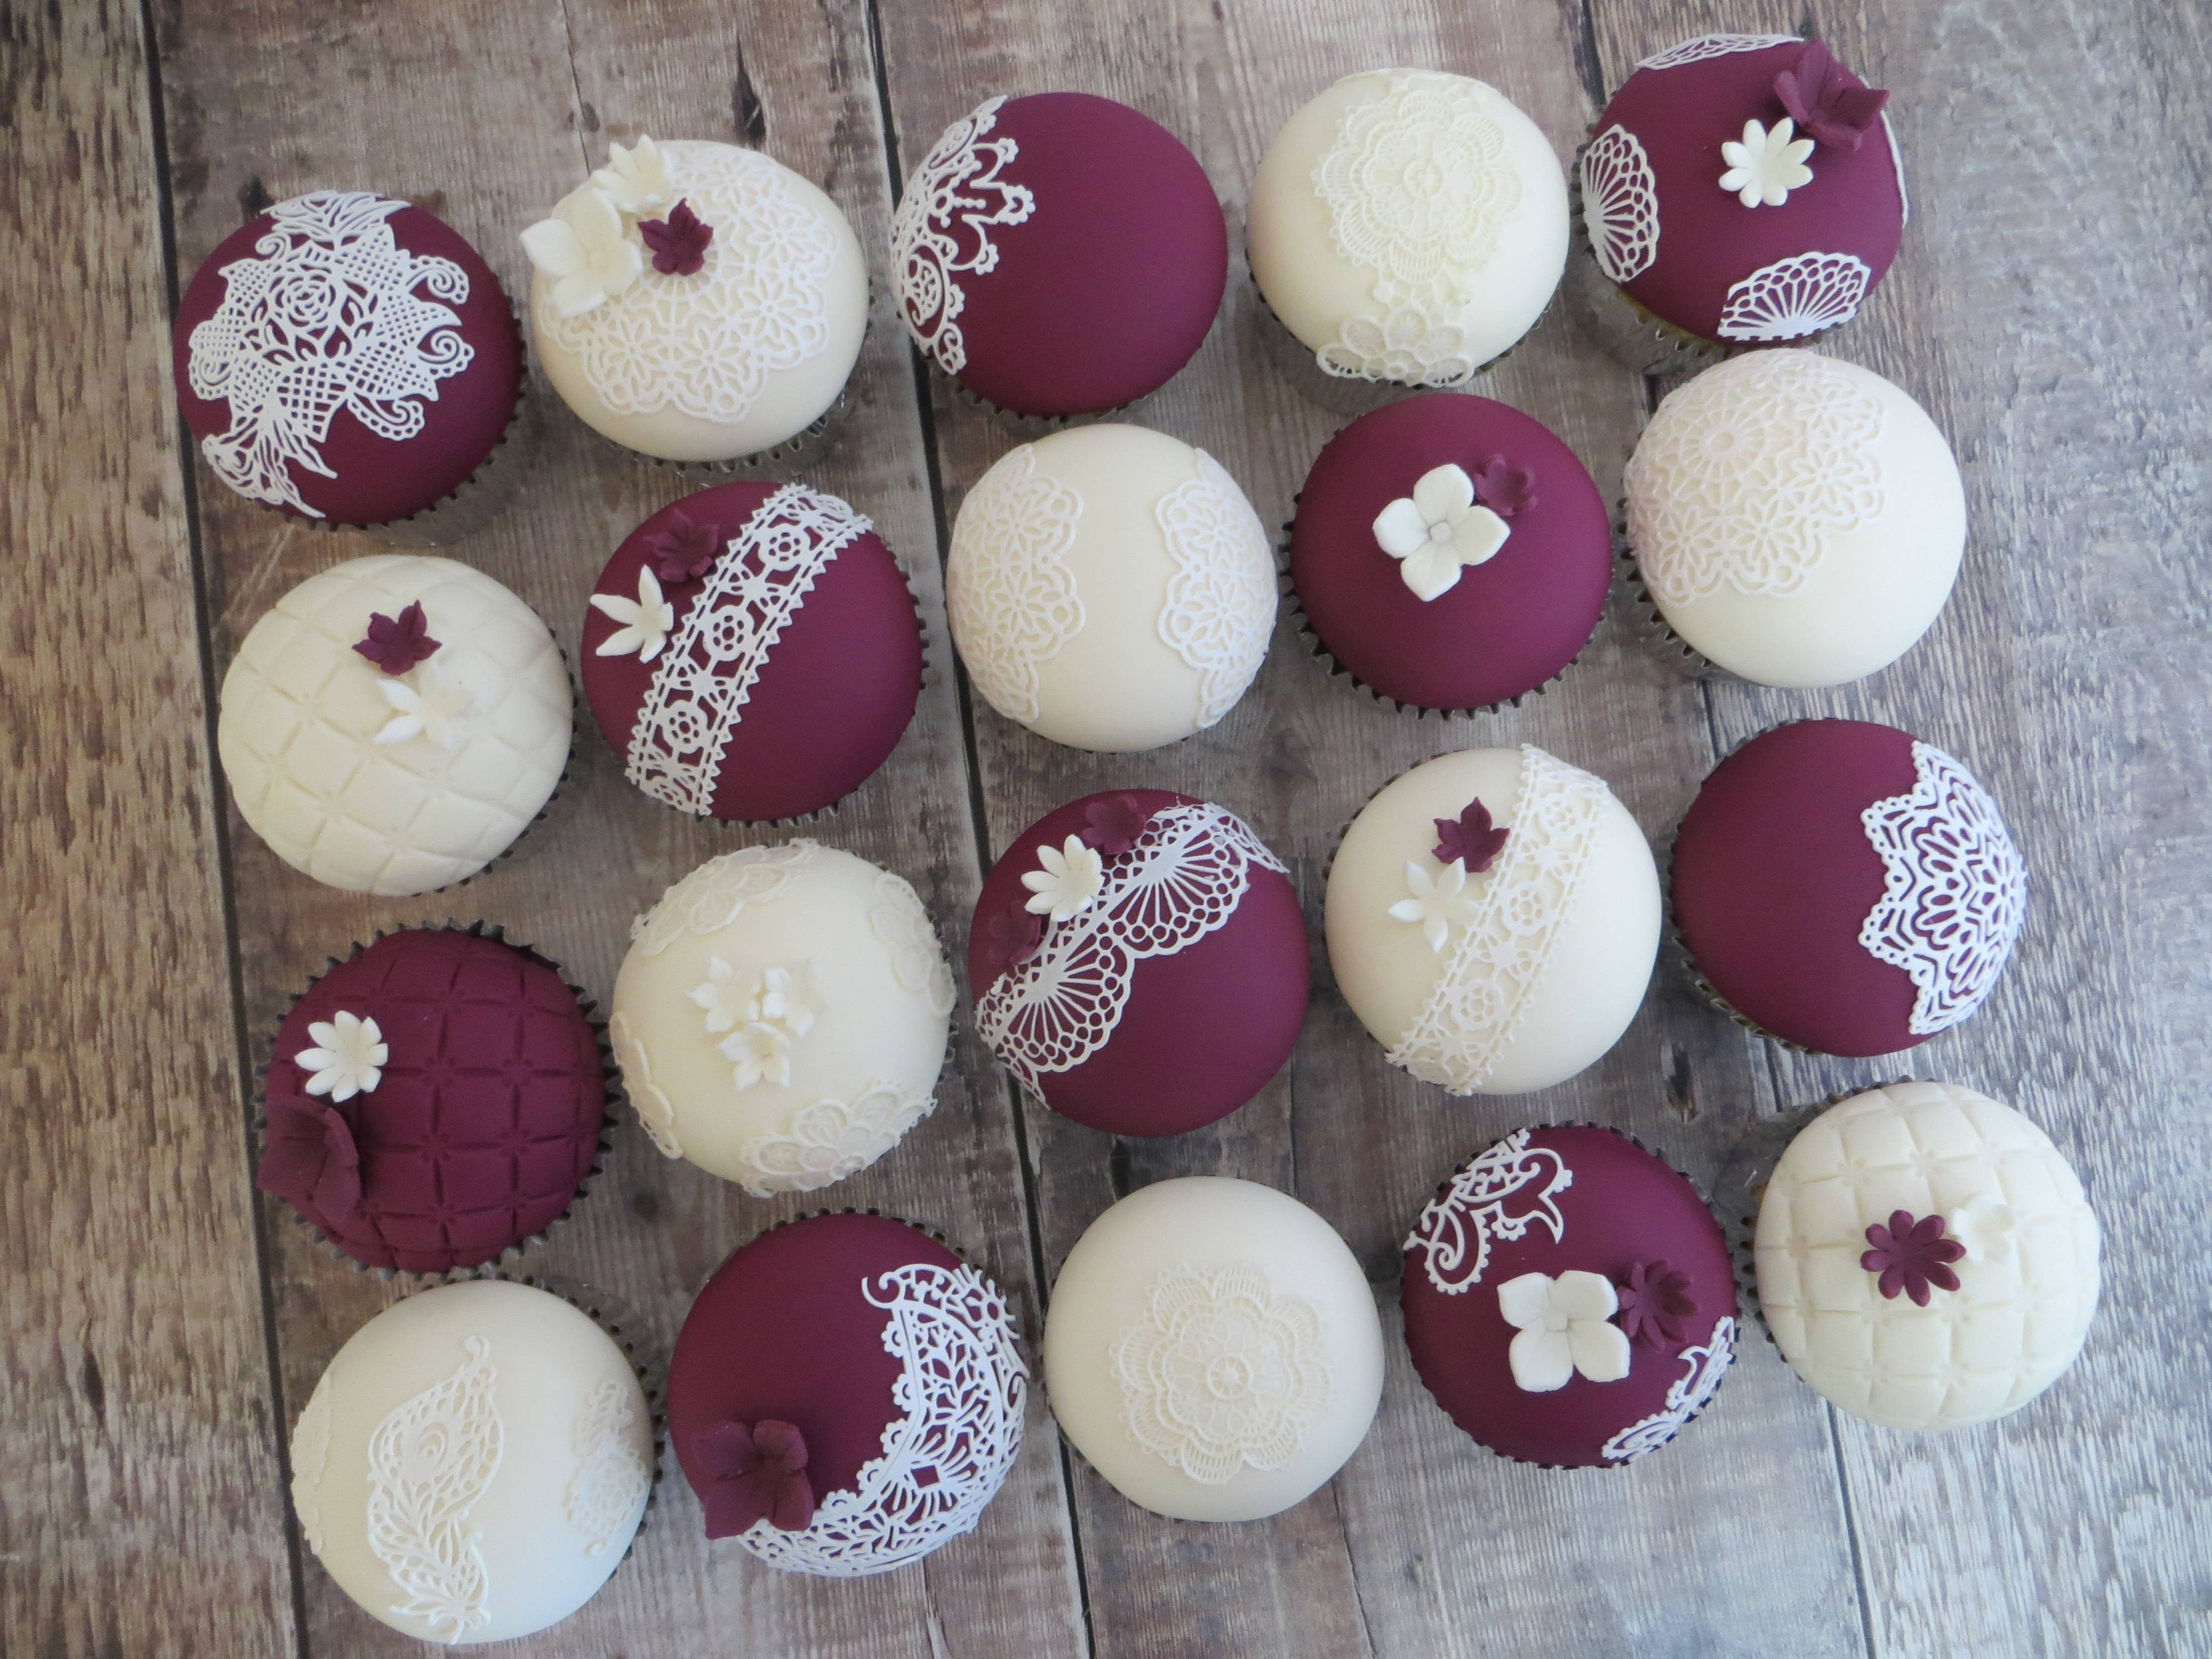 Burgundy and ivory lace cupcakes